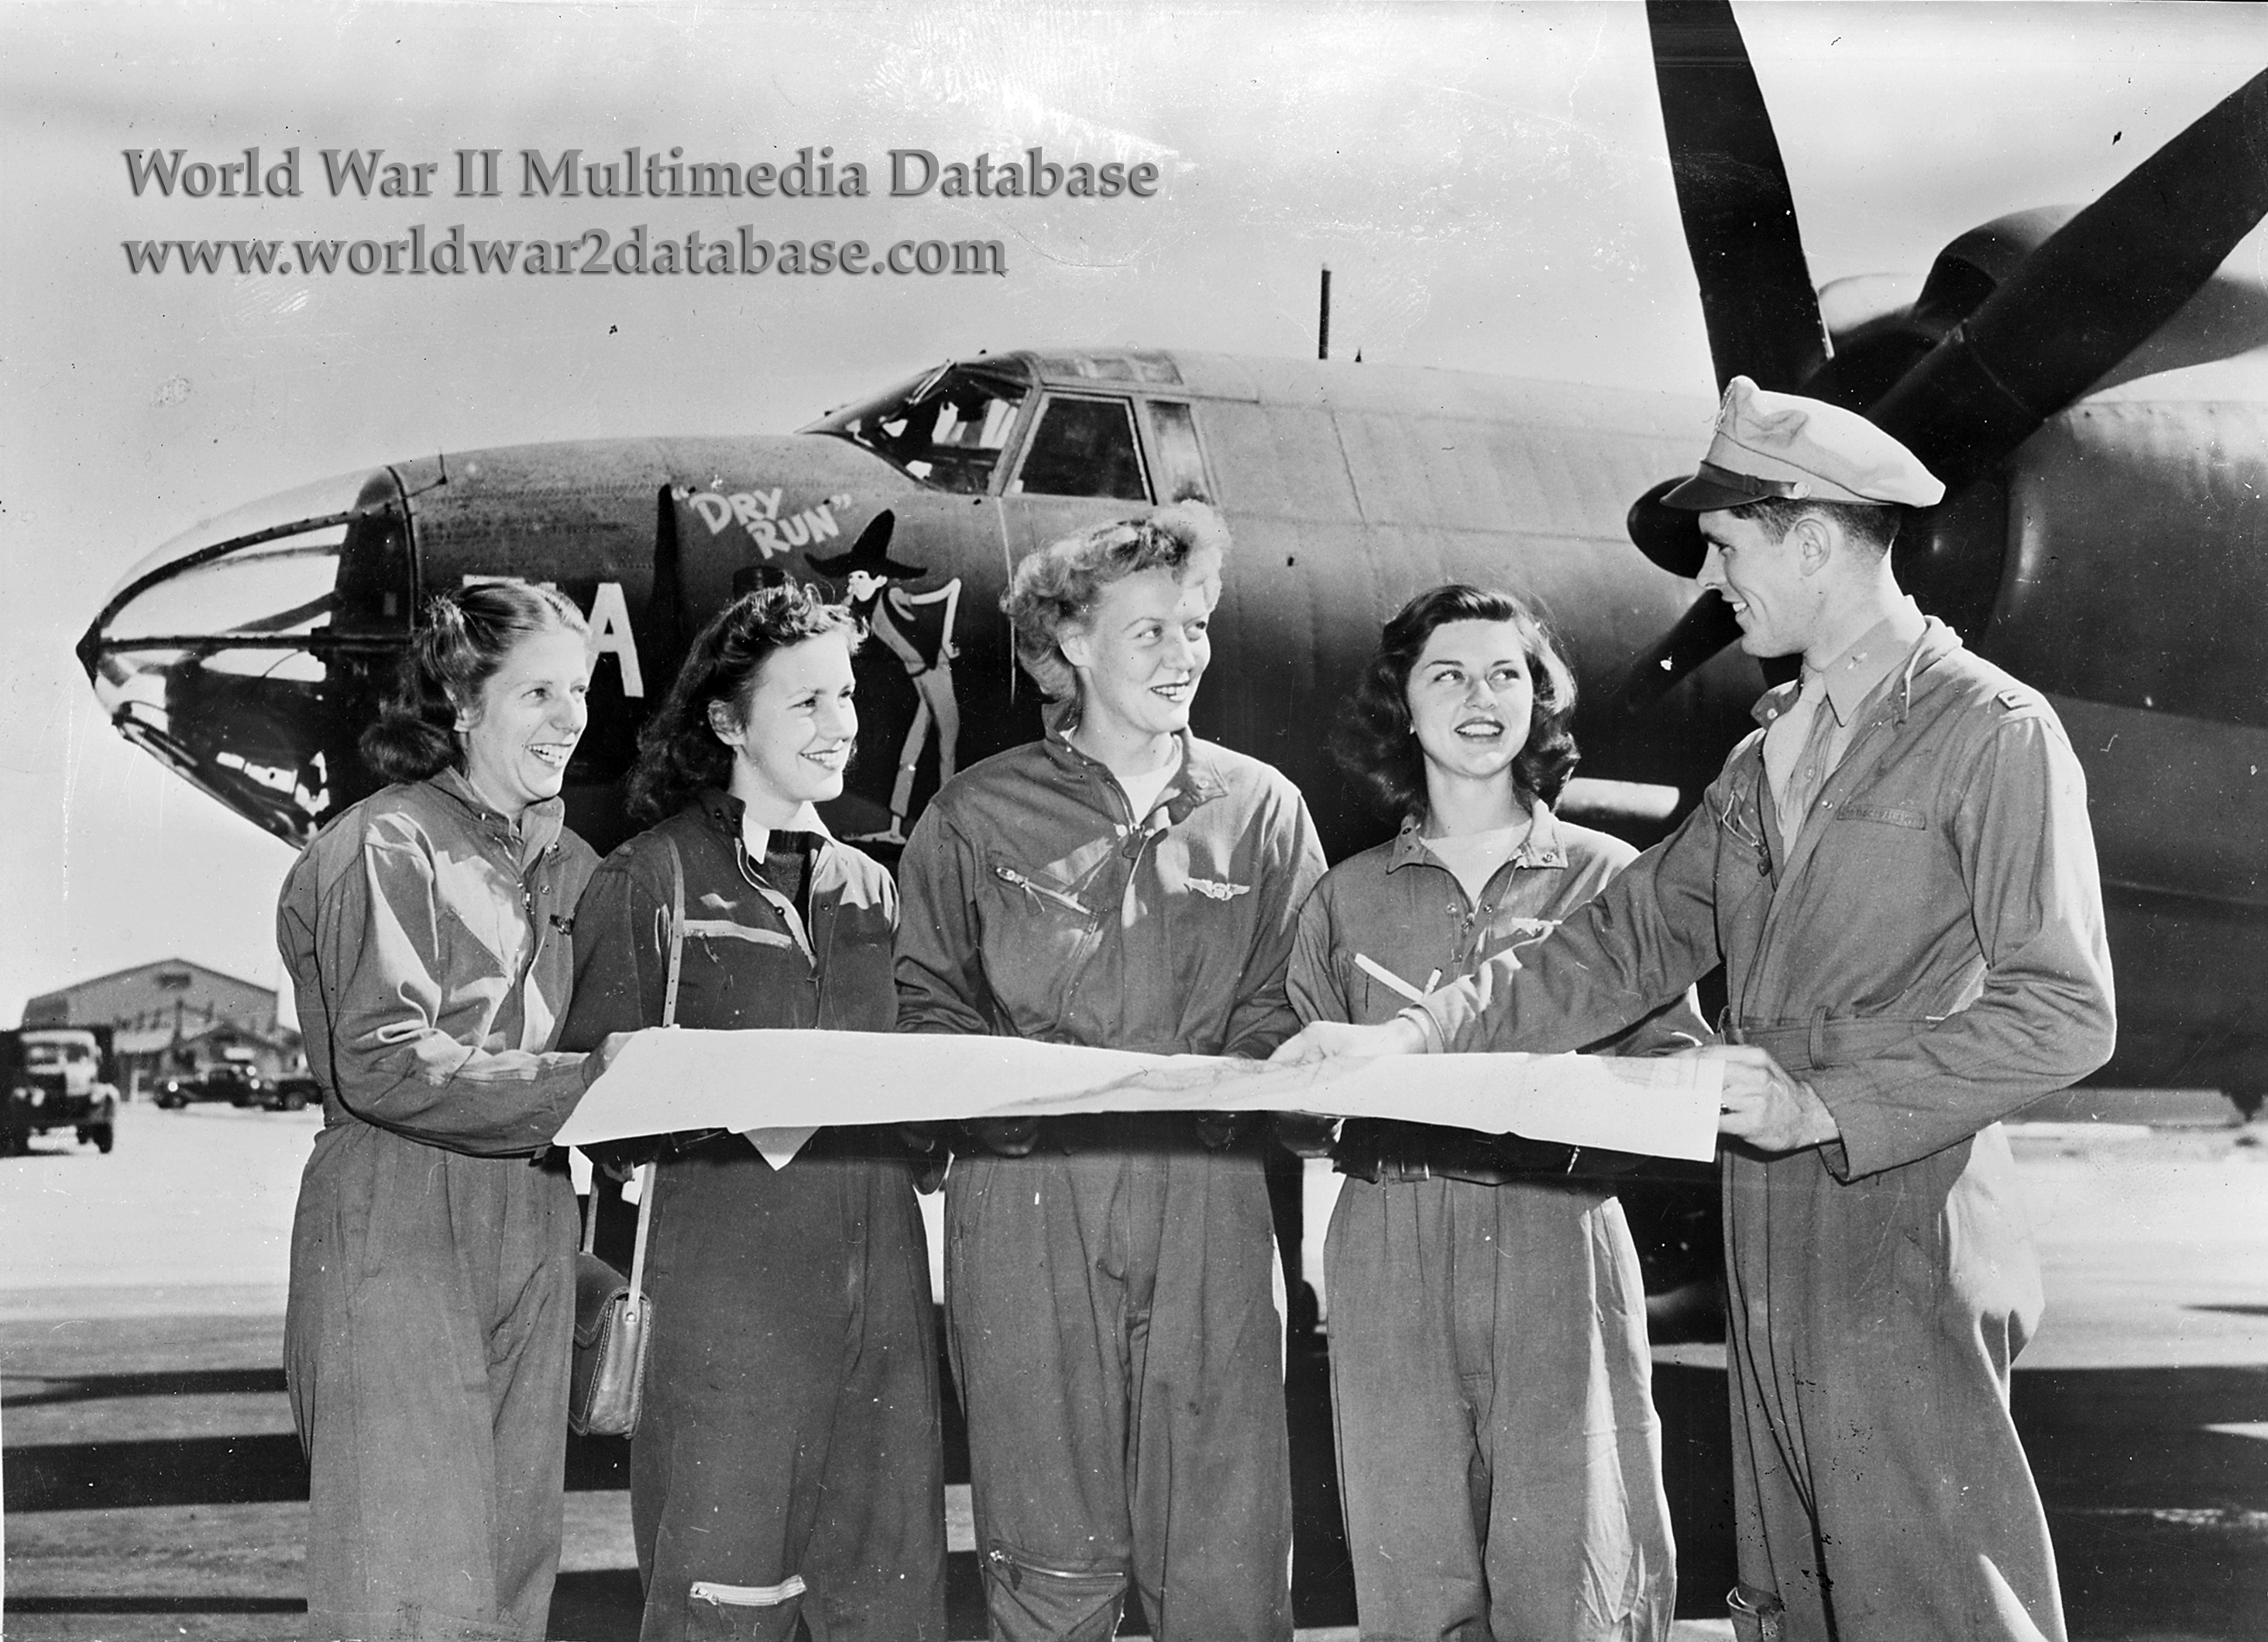 WASPs Receive Final Instructions Before Flying Martin B-26 Marauder.  wwii0015.jpg. Caption: Four Women Airforce Service Pilots ...